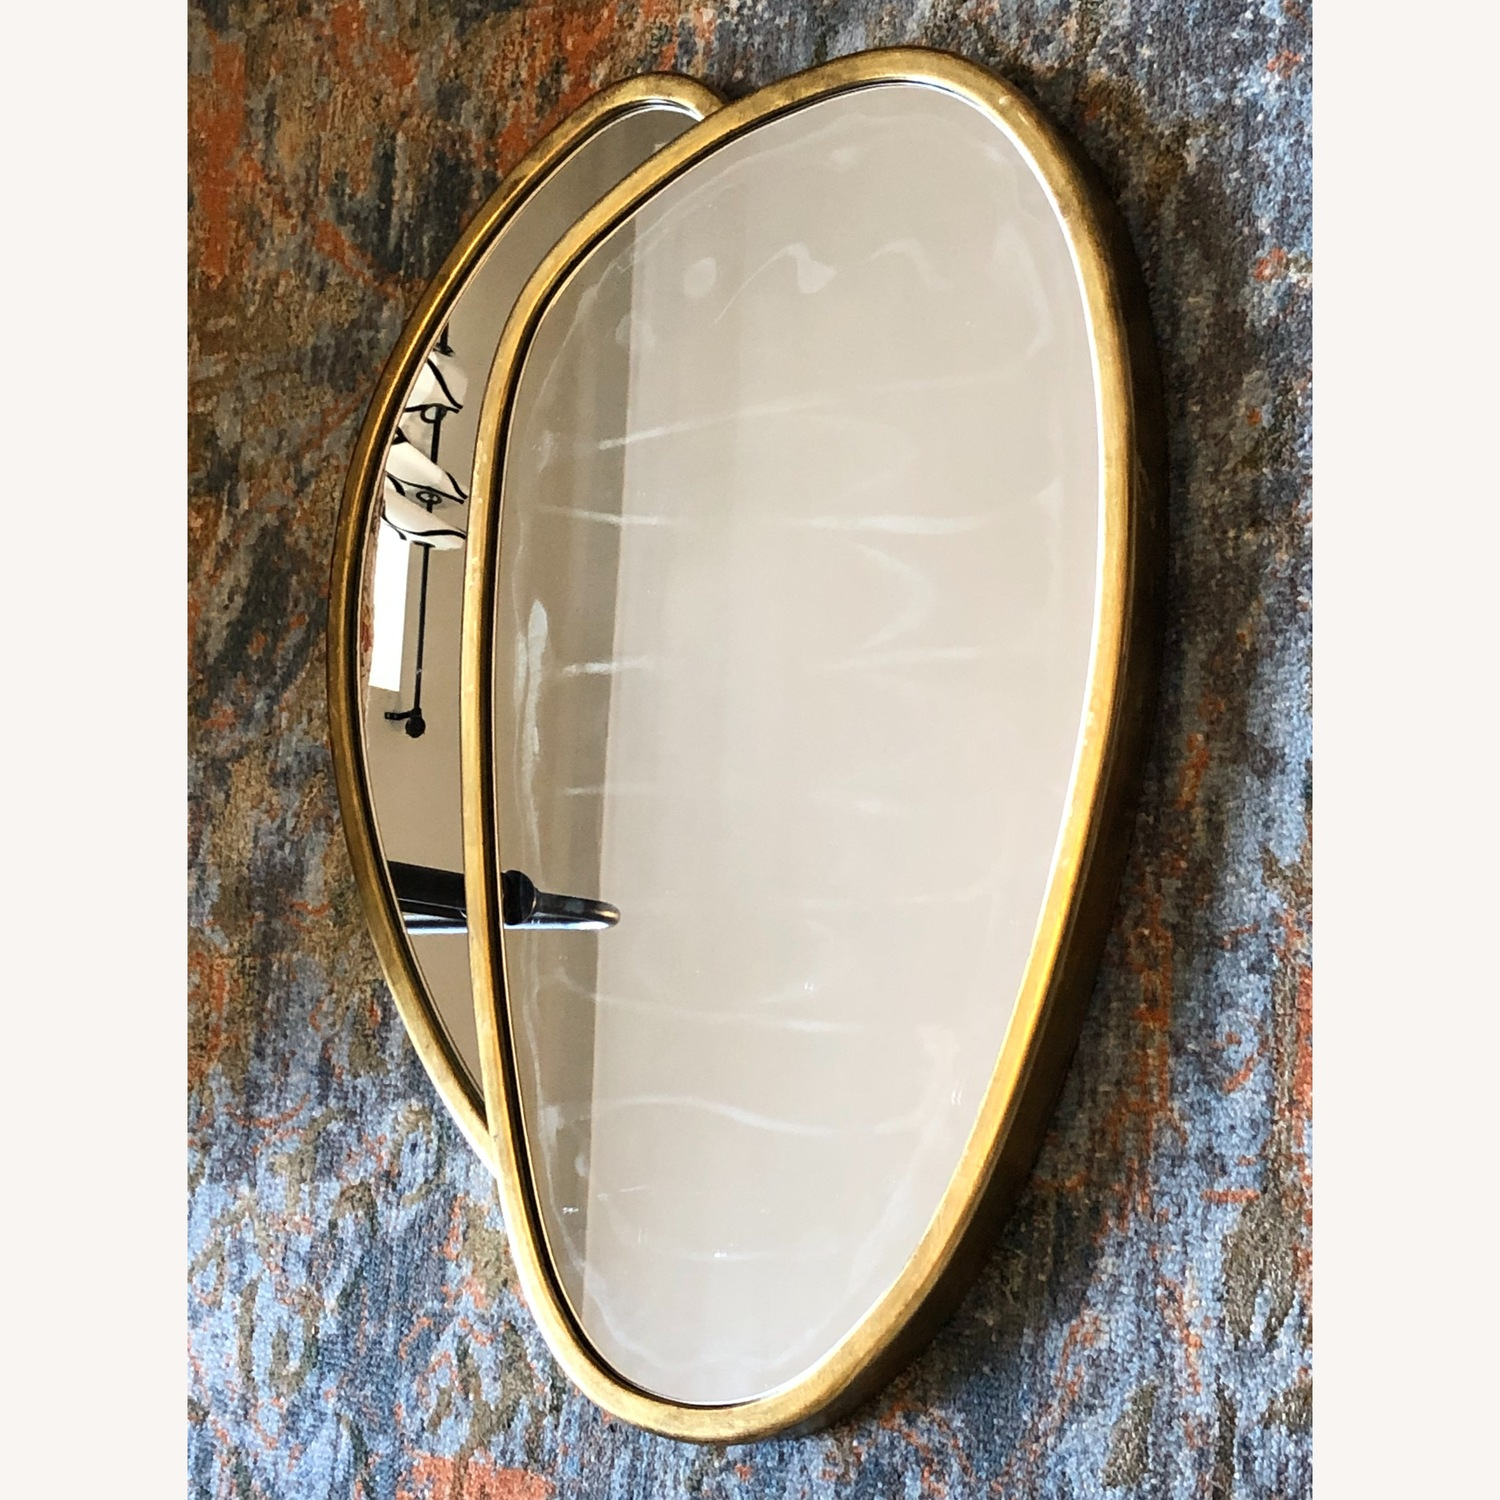 Organic Forms Shapes Gold Leaf Mirror - image-5